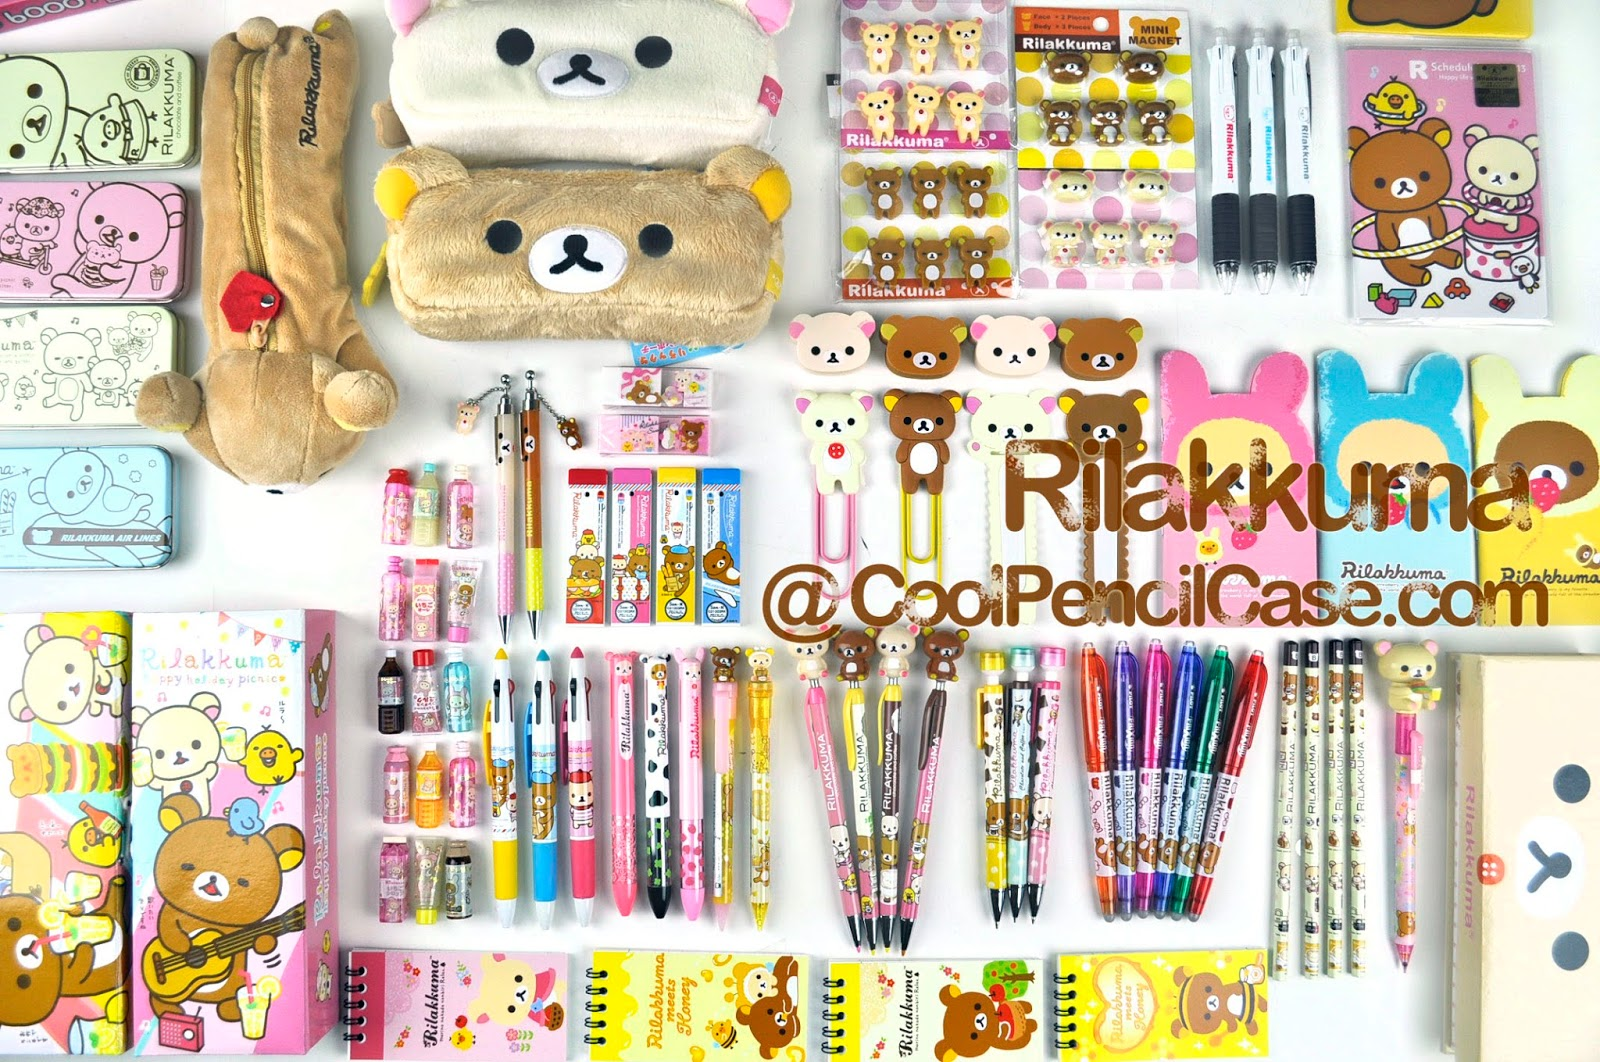 Rilakkuma pencil cases erasers pens notes at cool pencil case